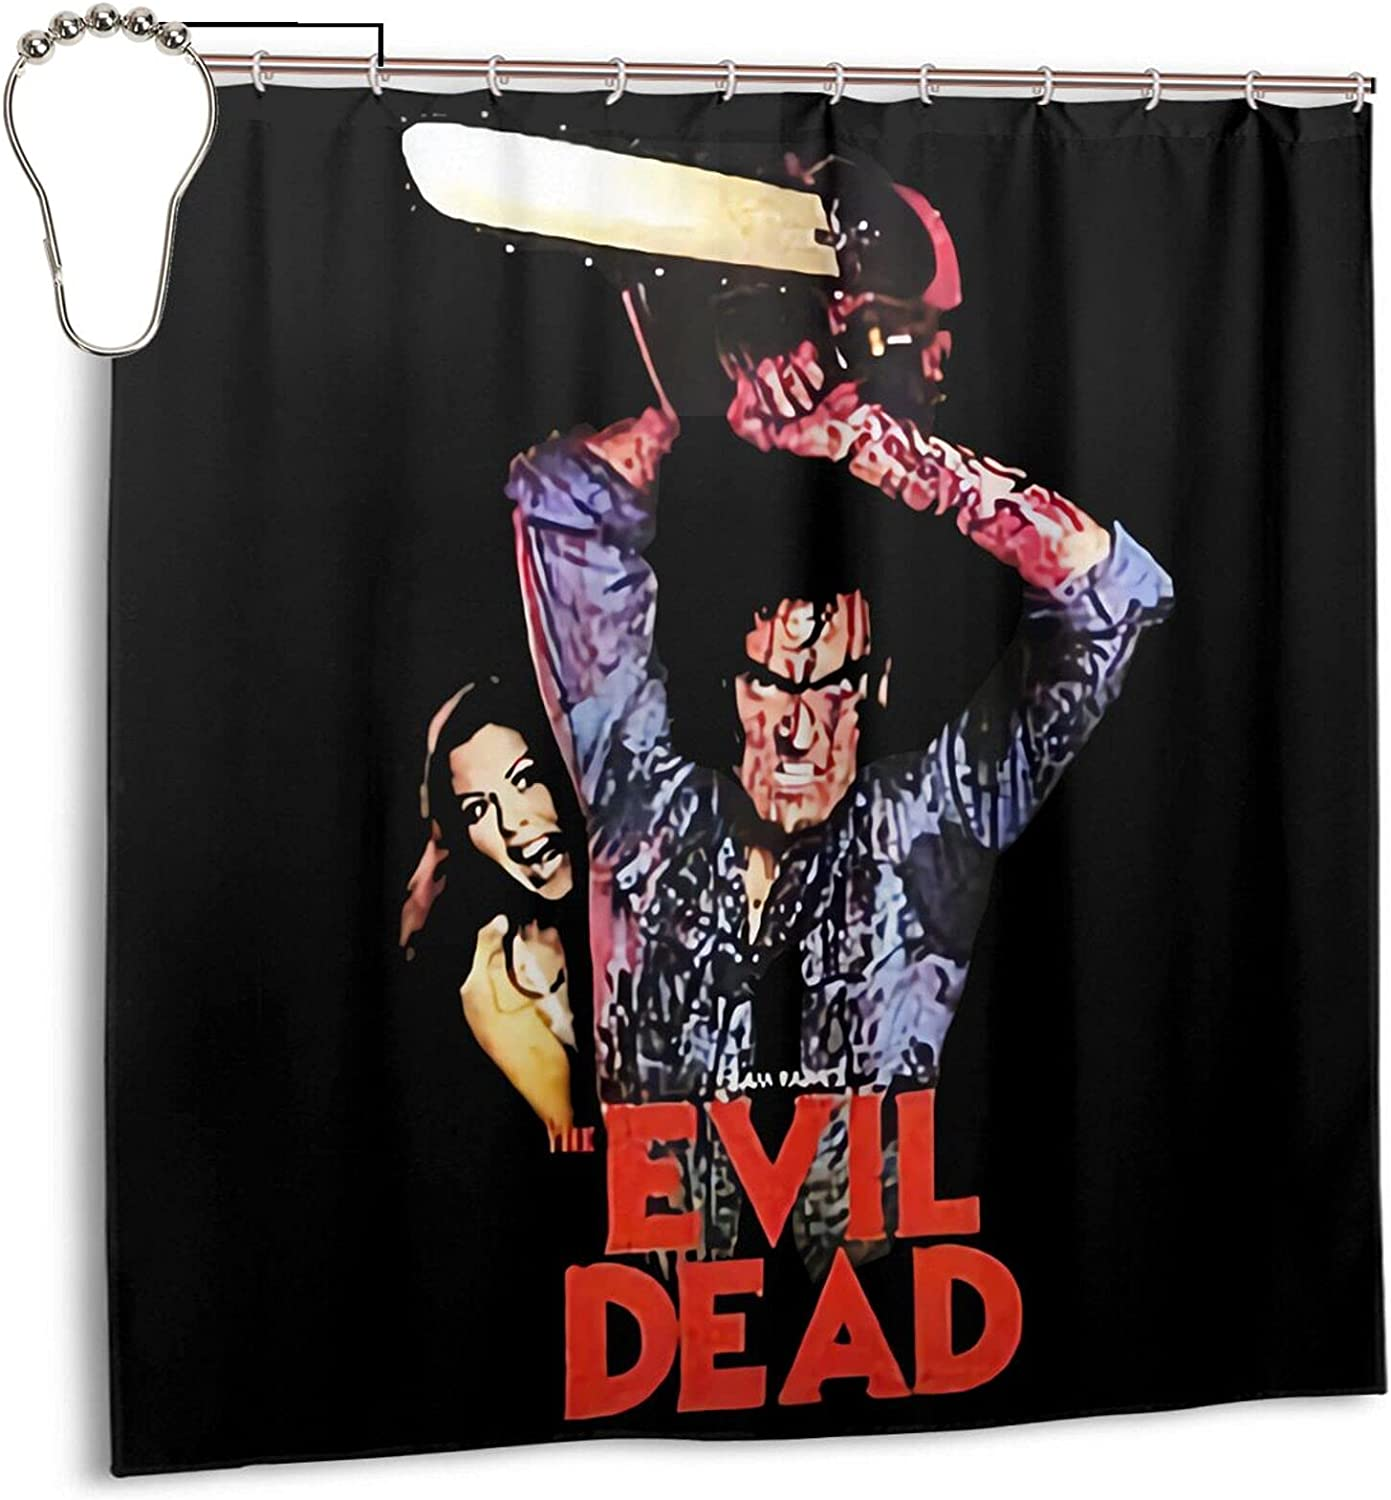 Atsushi Evil Dead Shower Curtains Bathroom Decor Waterproof Polyester Fabric Bath Curtain 72 X 72 in with 12 Plastic Hooks